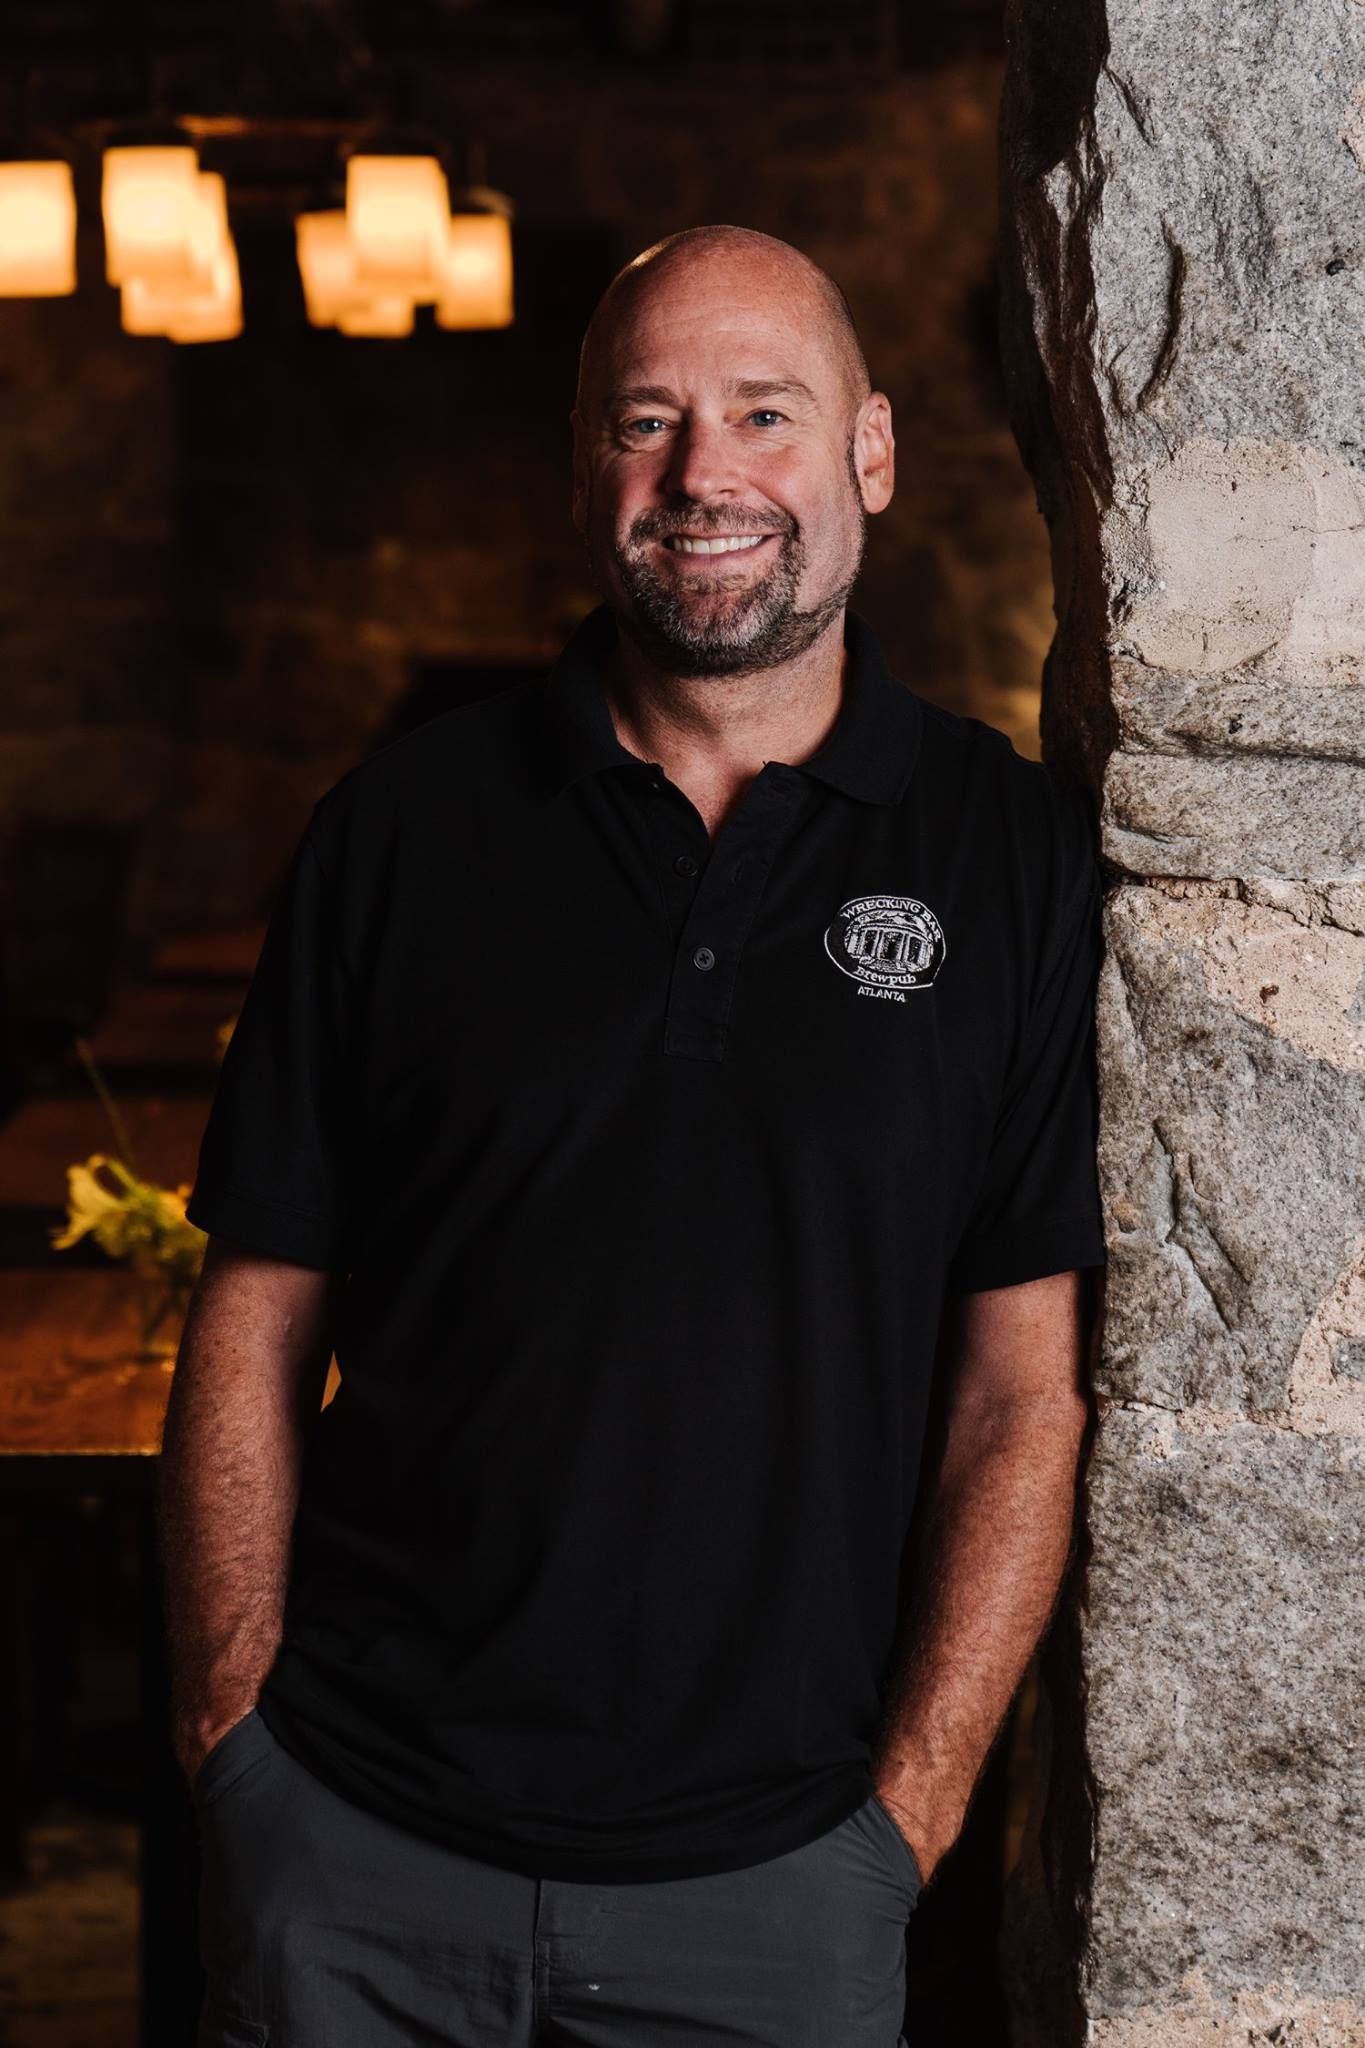 Bob Sandage, owner and founder of Wrecking Bar Brewpub in Little Five Points, announces he's stepping down